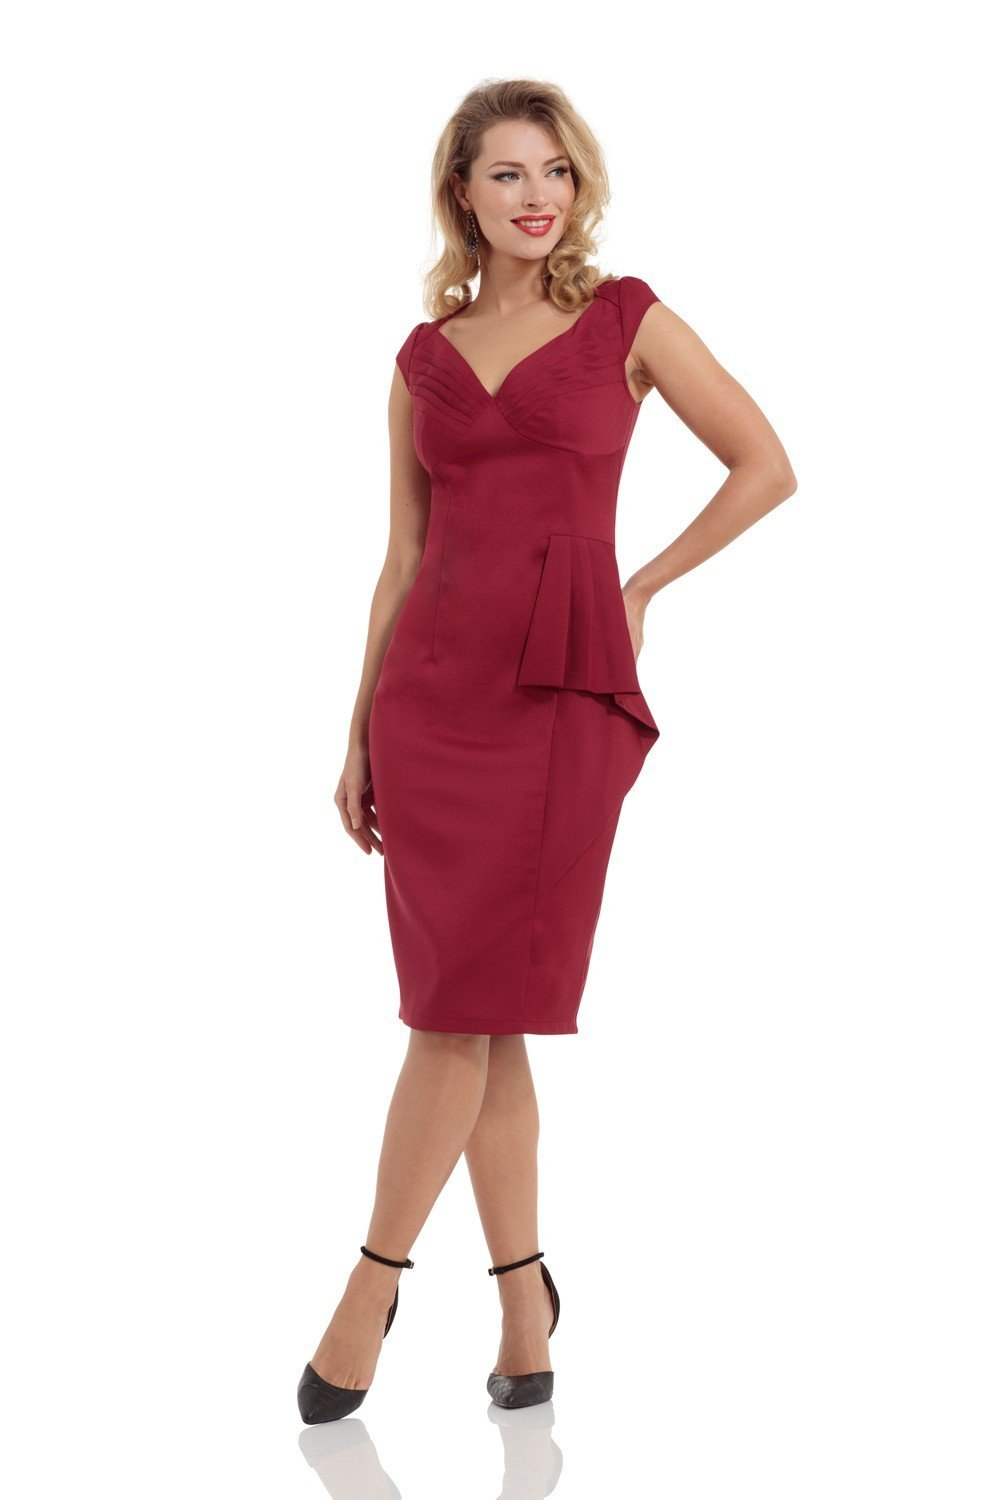 Voodoo Vixen Khloe Pencil Dress (Burgundy) - Bohemian Finds